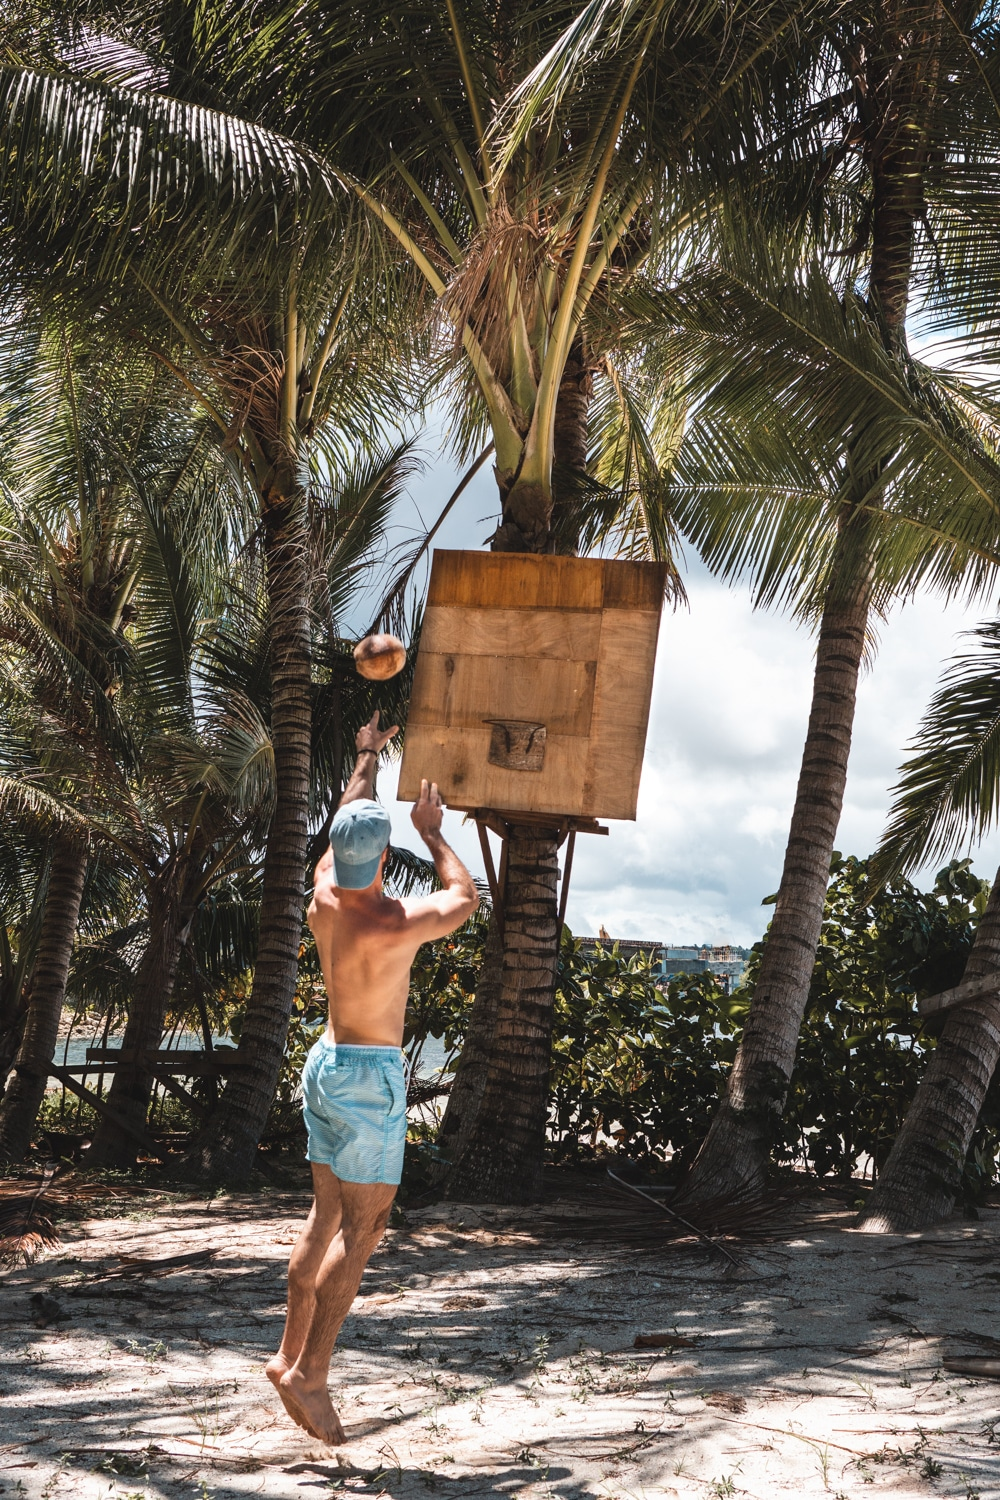 philippines tropical island basketball court